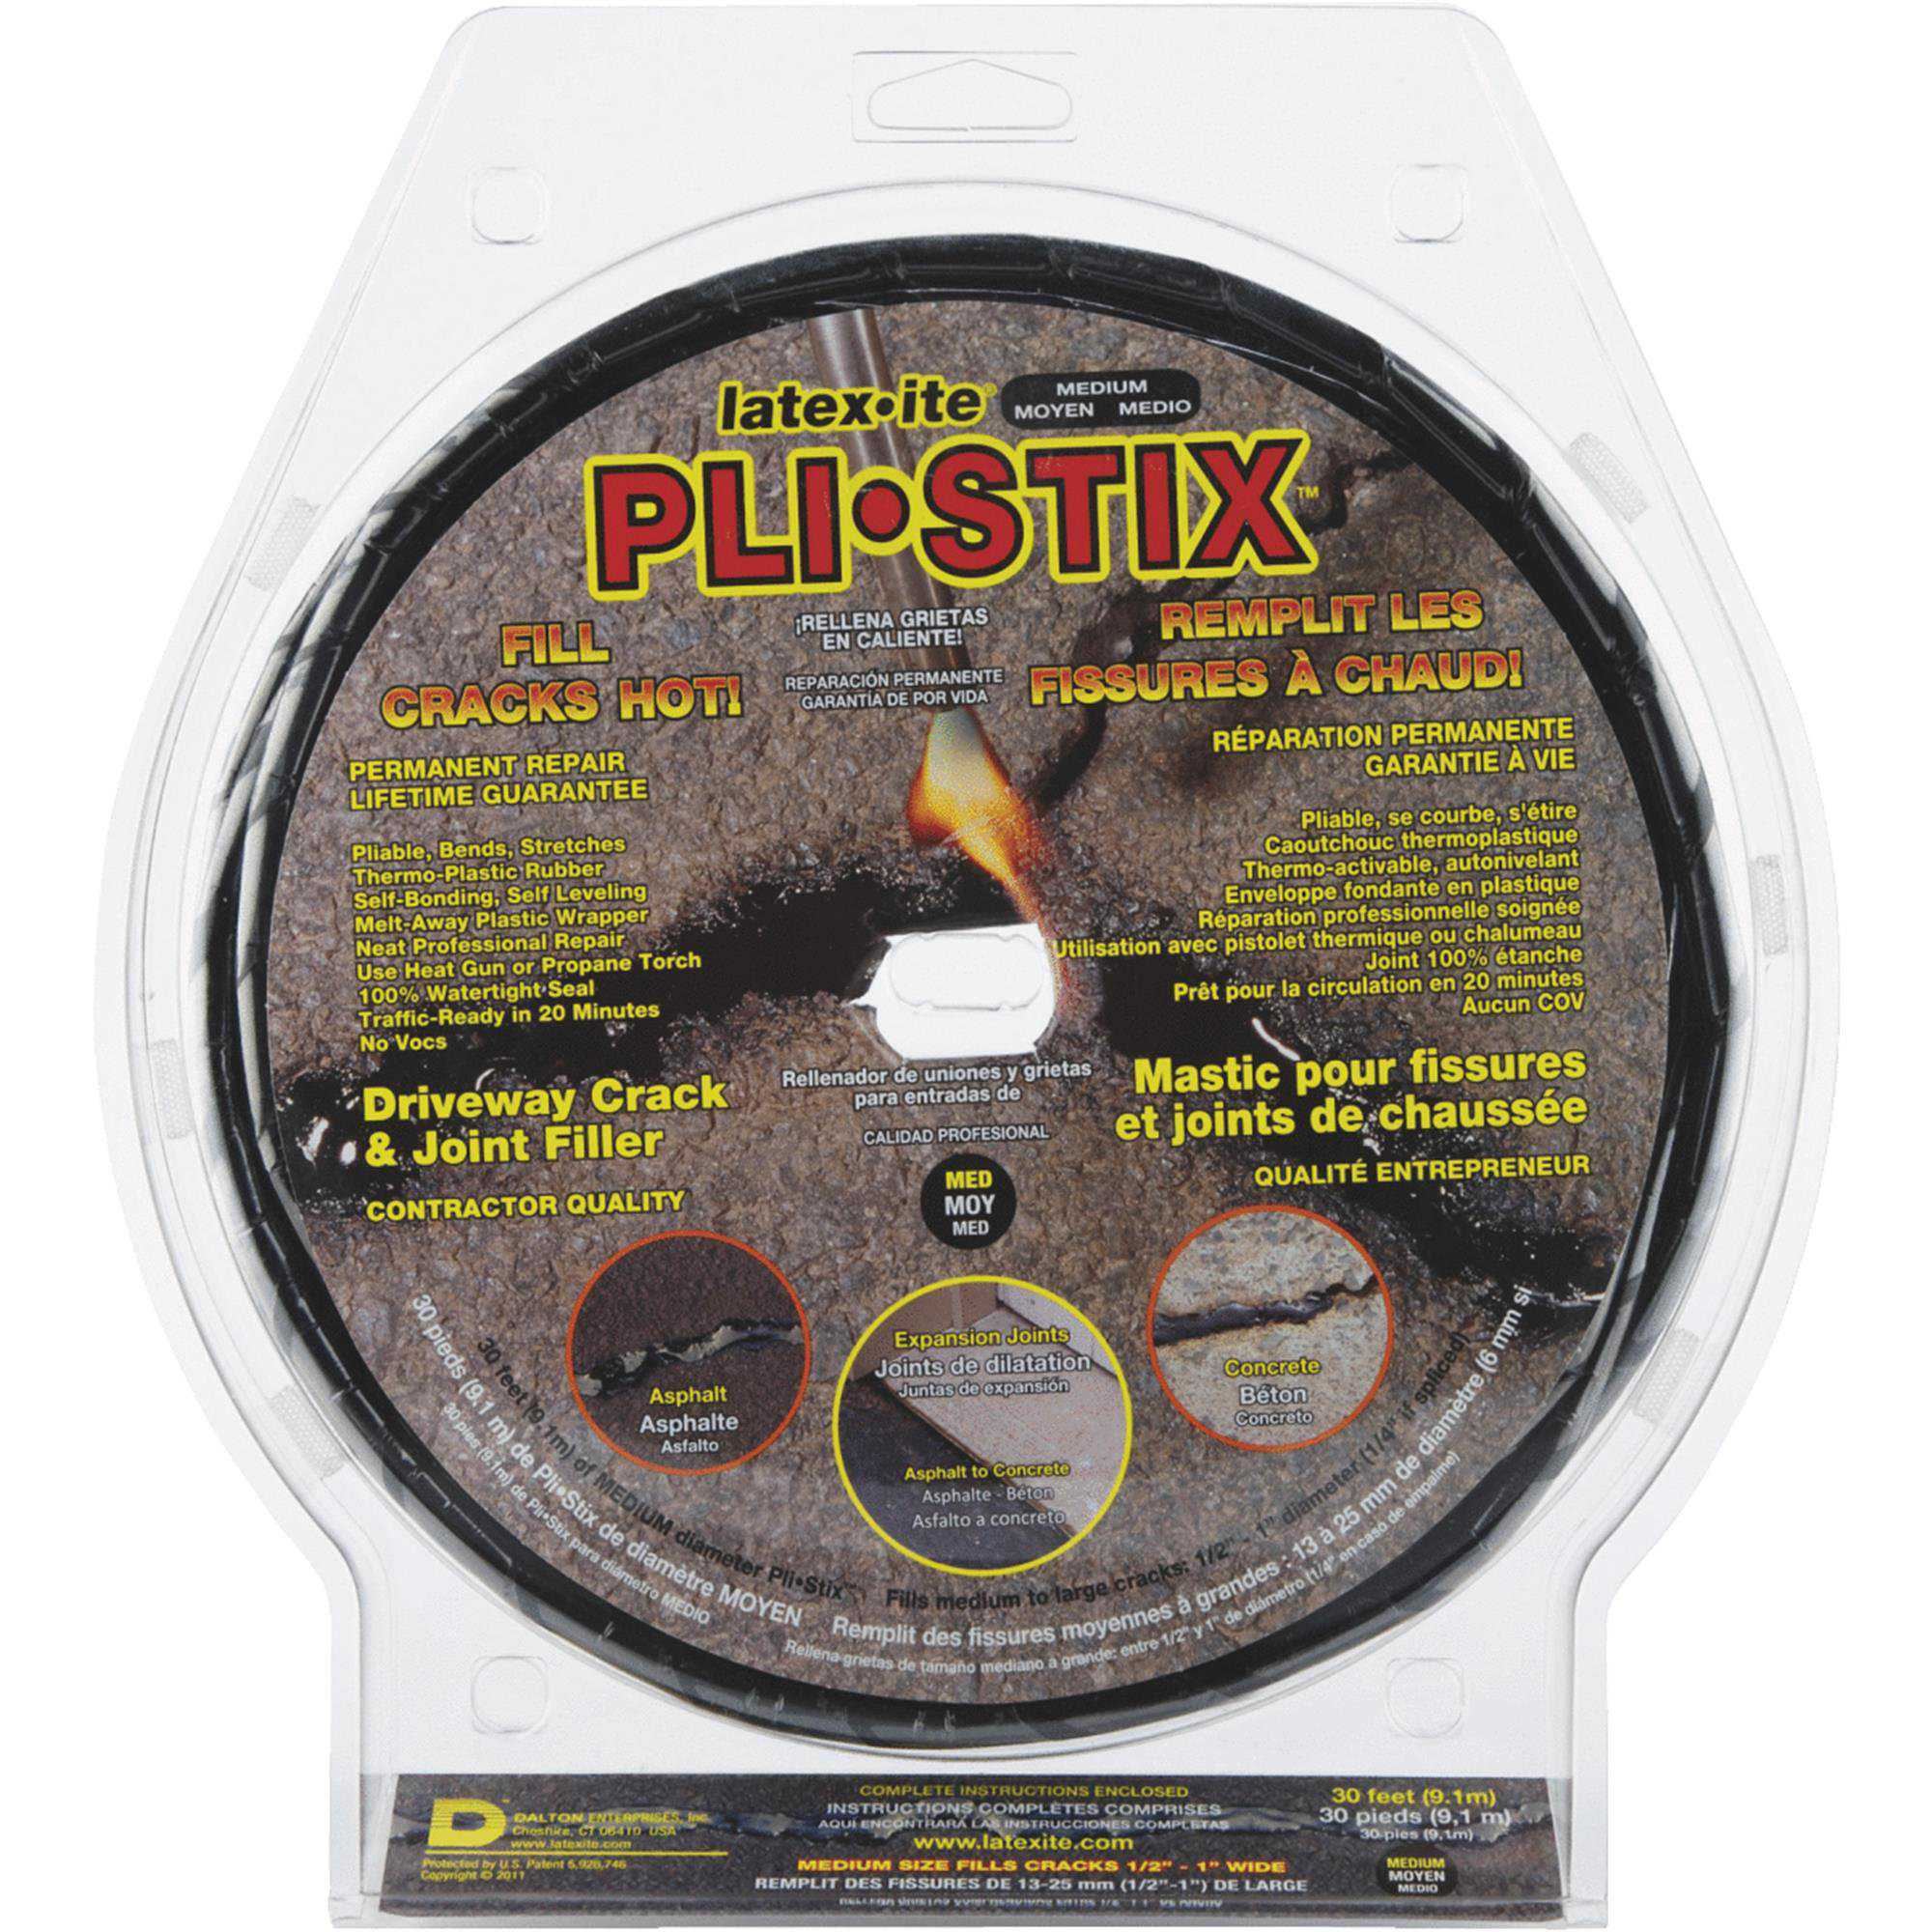 PLI-STIX Asphalt and Concrete Crack Filler